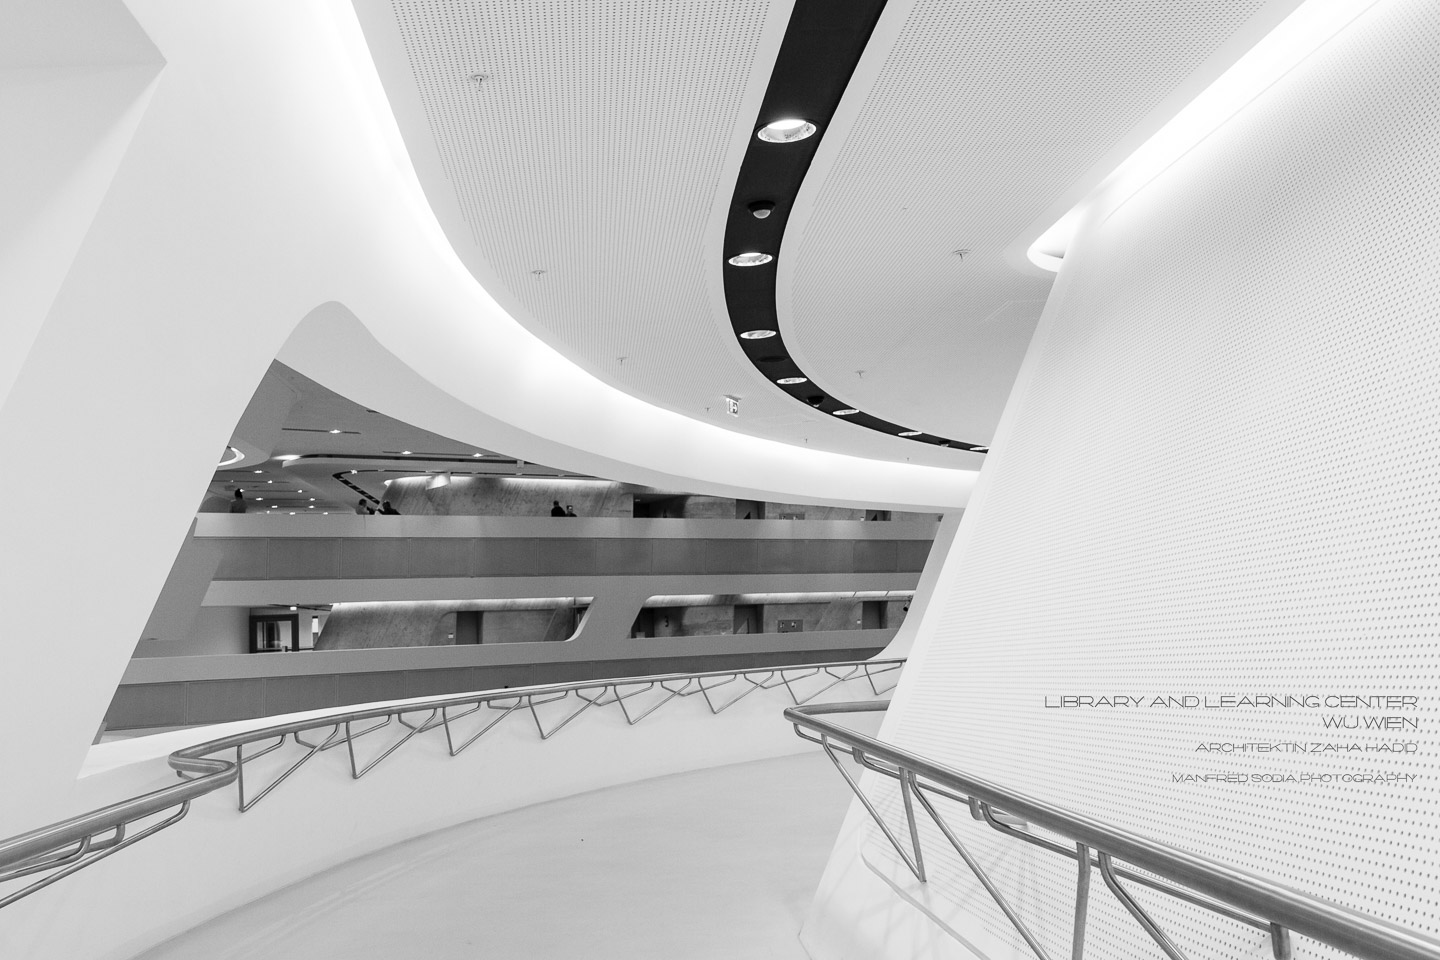 Learning Center der WU Wien, Architektin Zaha Hadid